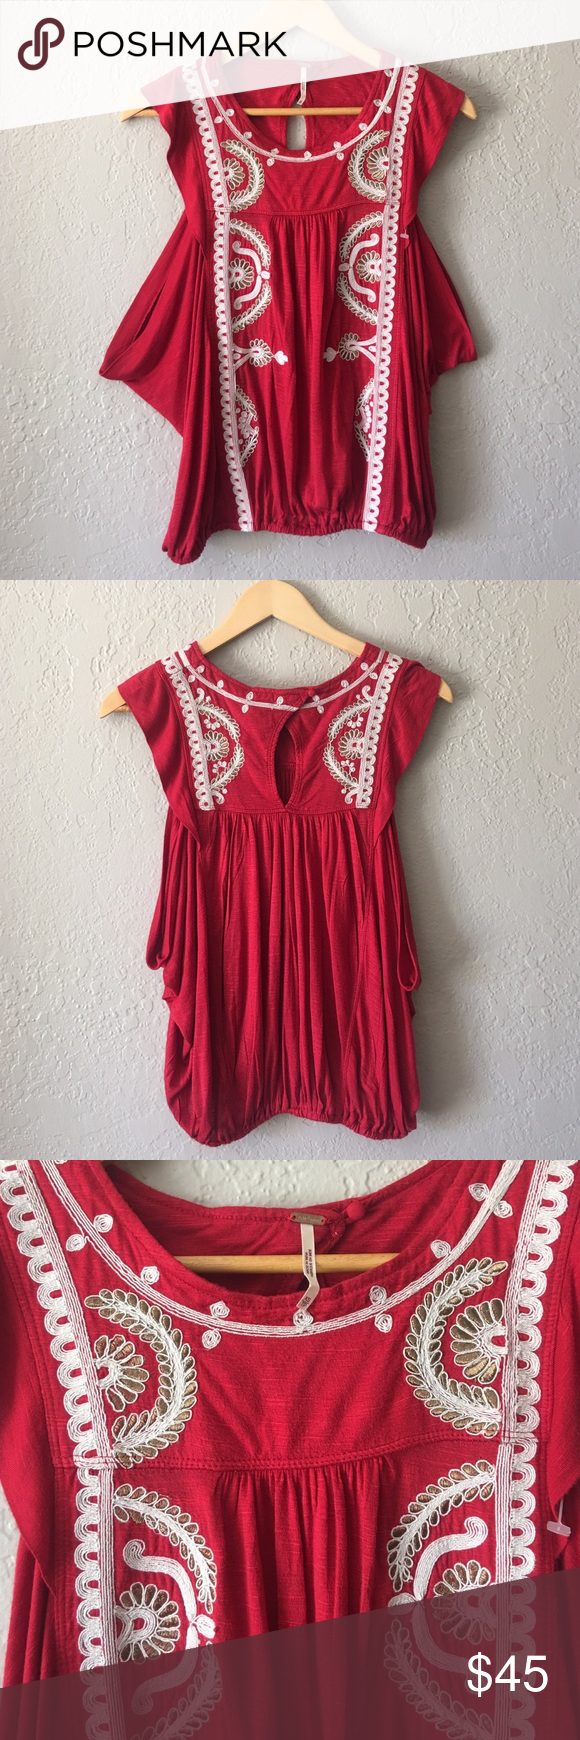 Free People Tank top blouse Free People Dos Segundos embroidered tank top blouse in cherry red. New without tag Free People Tops Blouses